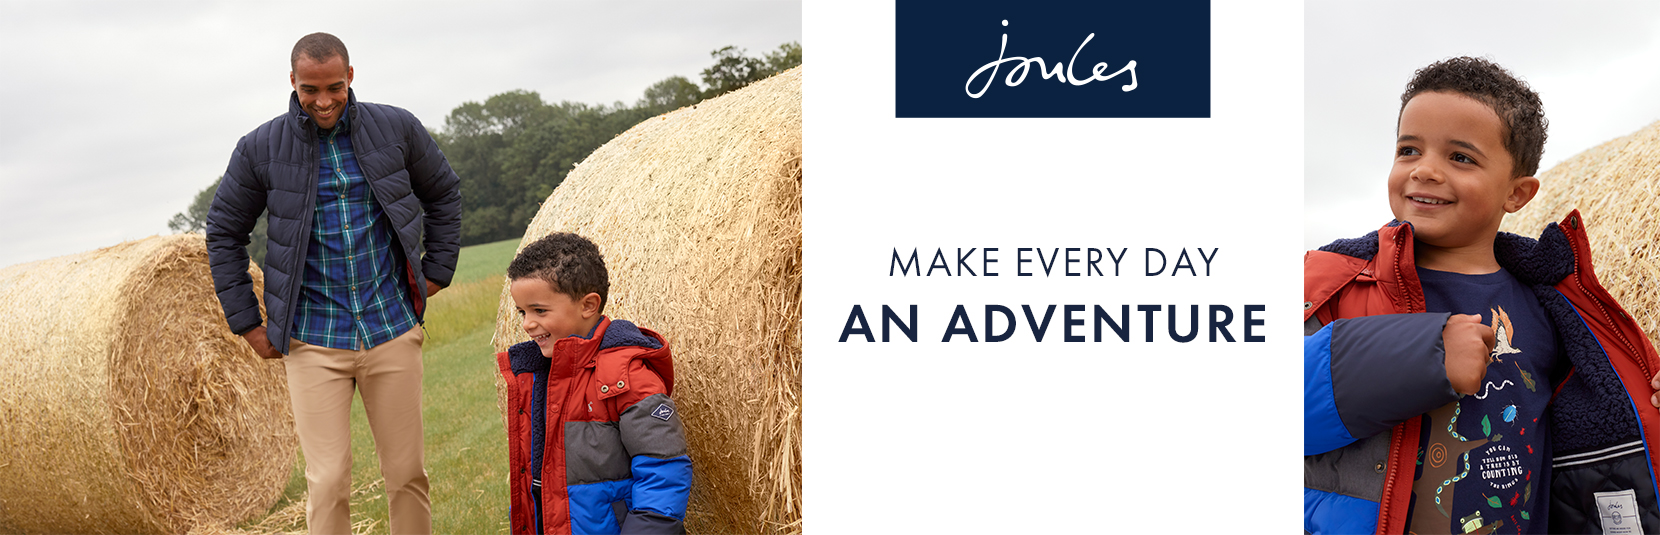 Joules banner